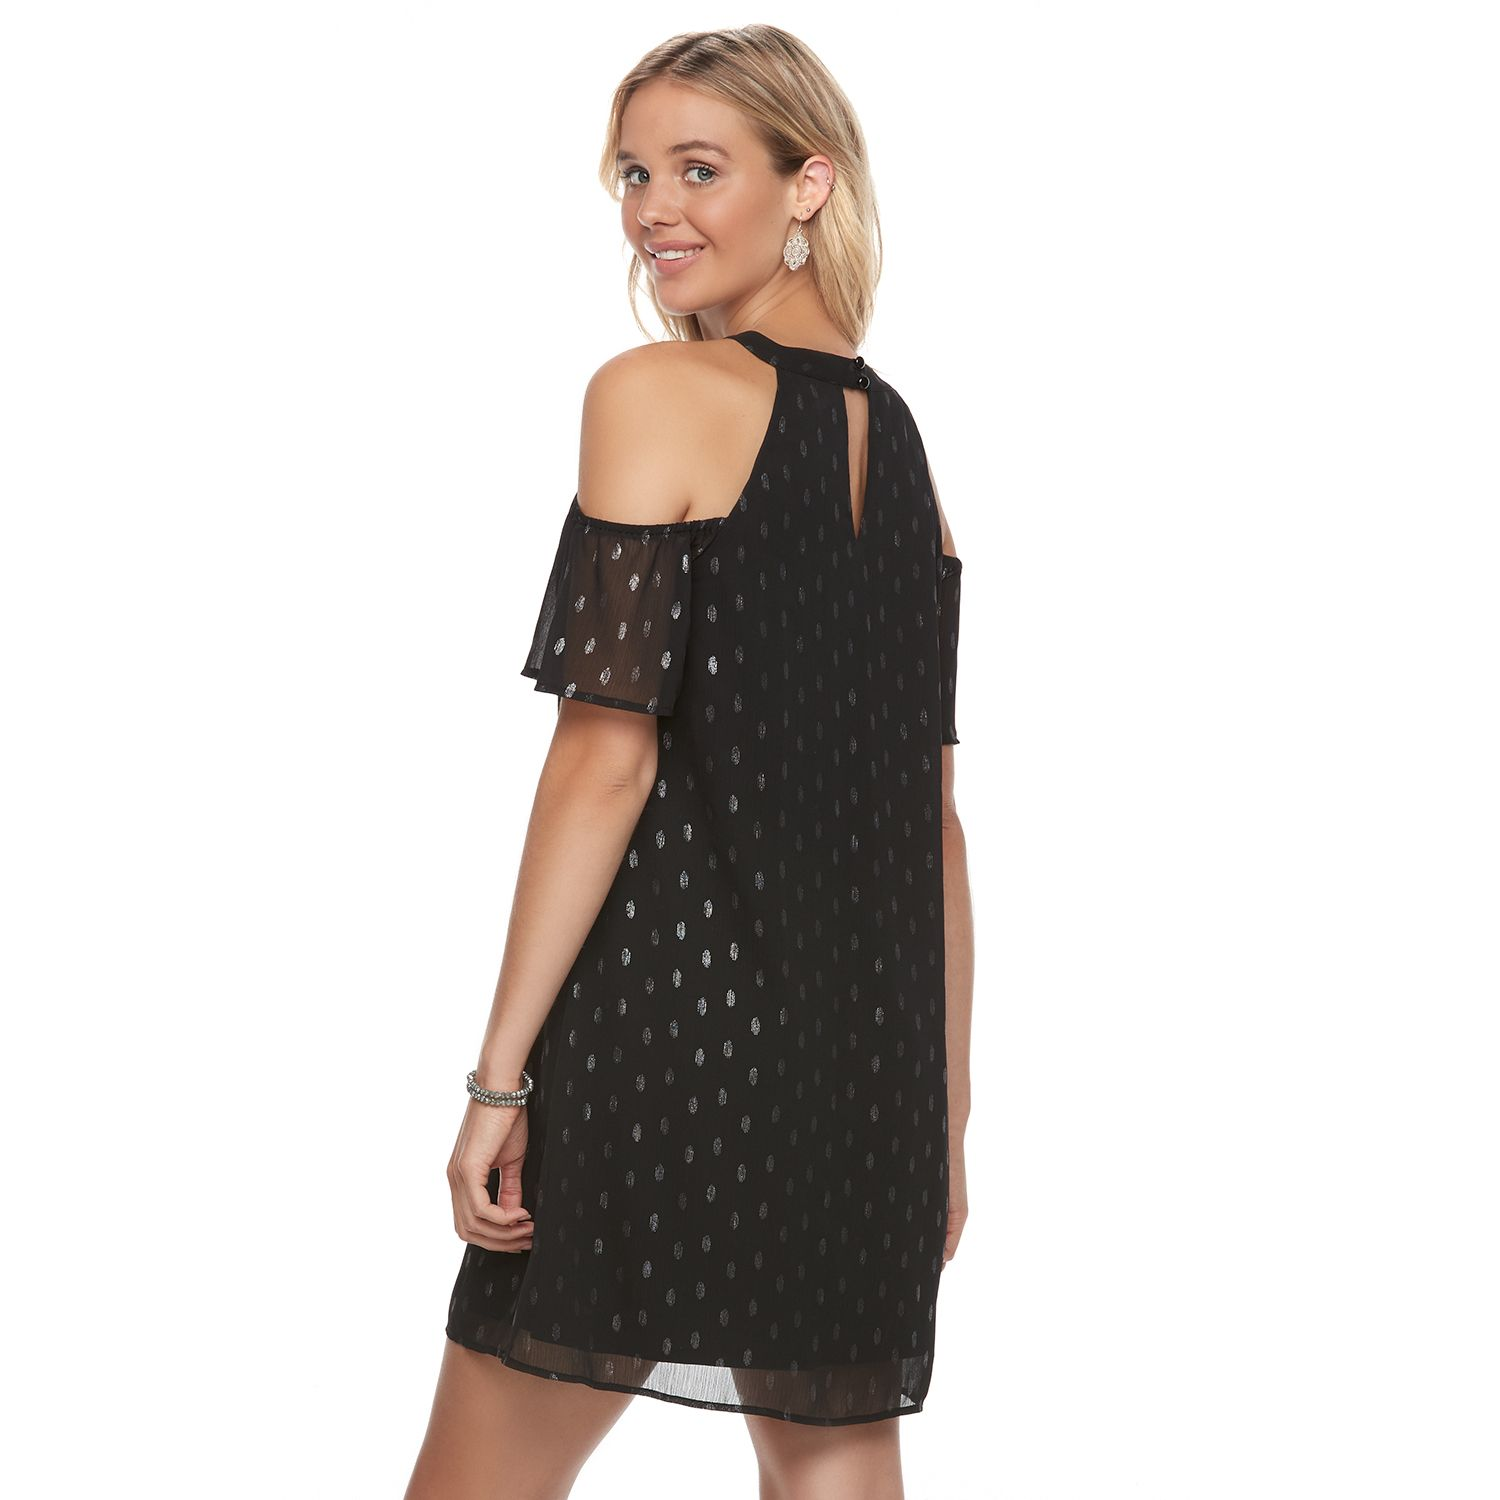 Kohls black polka dot dress